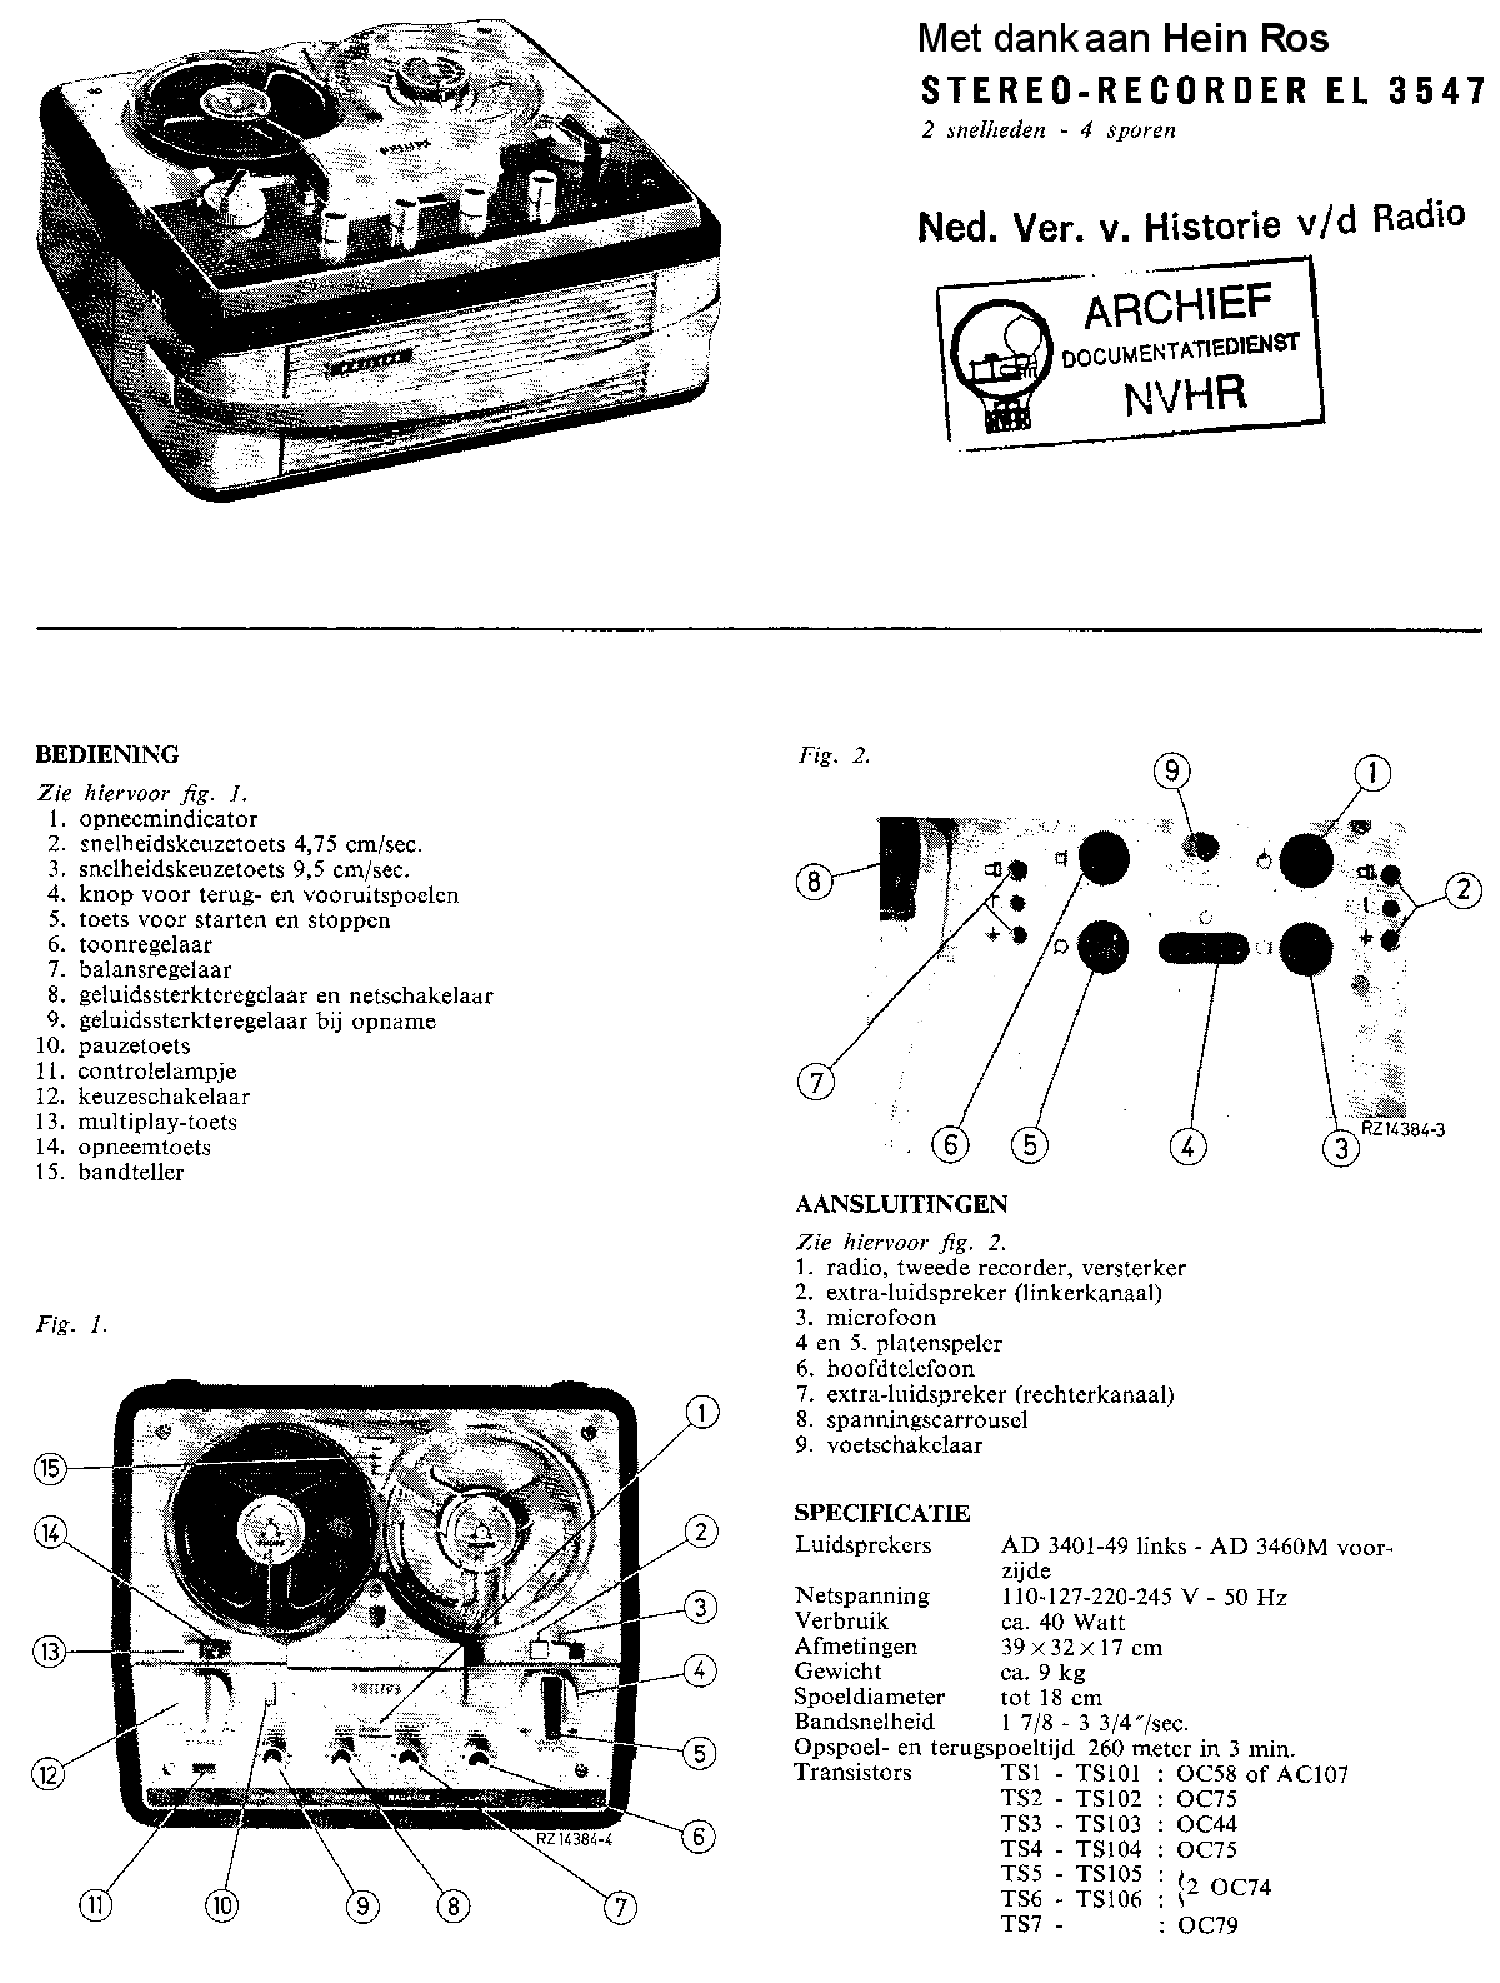 PHILIPS EL3547A-30 STEREO RECORDER SM Service Manual